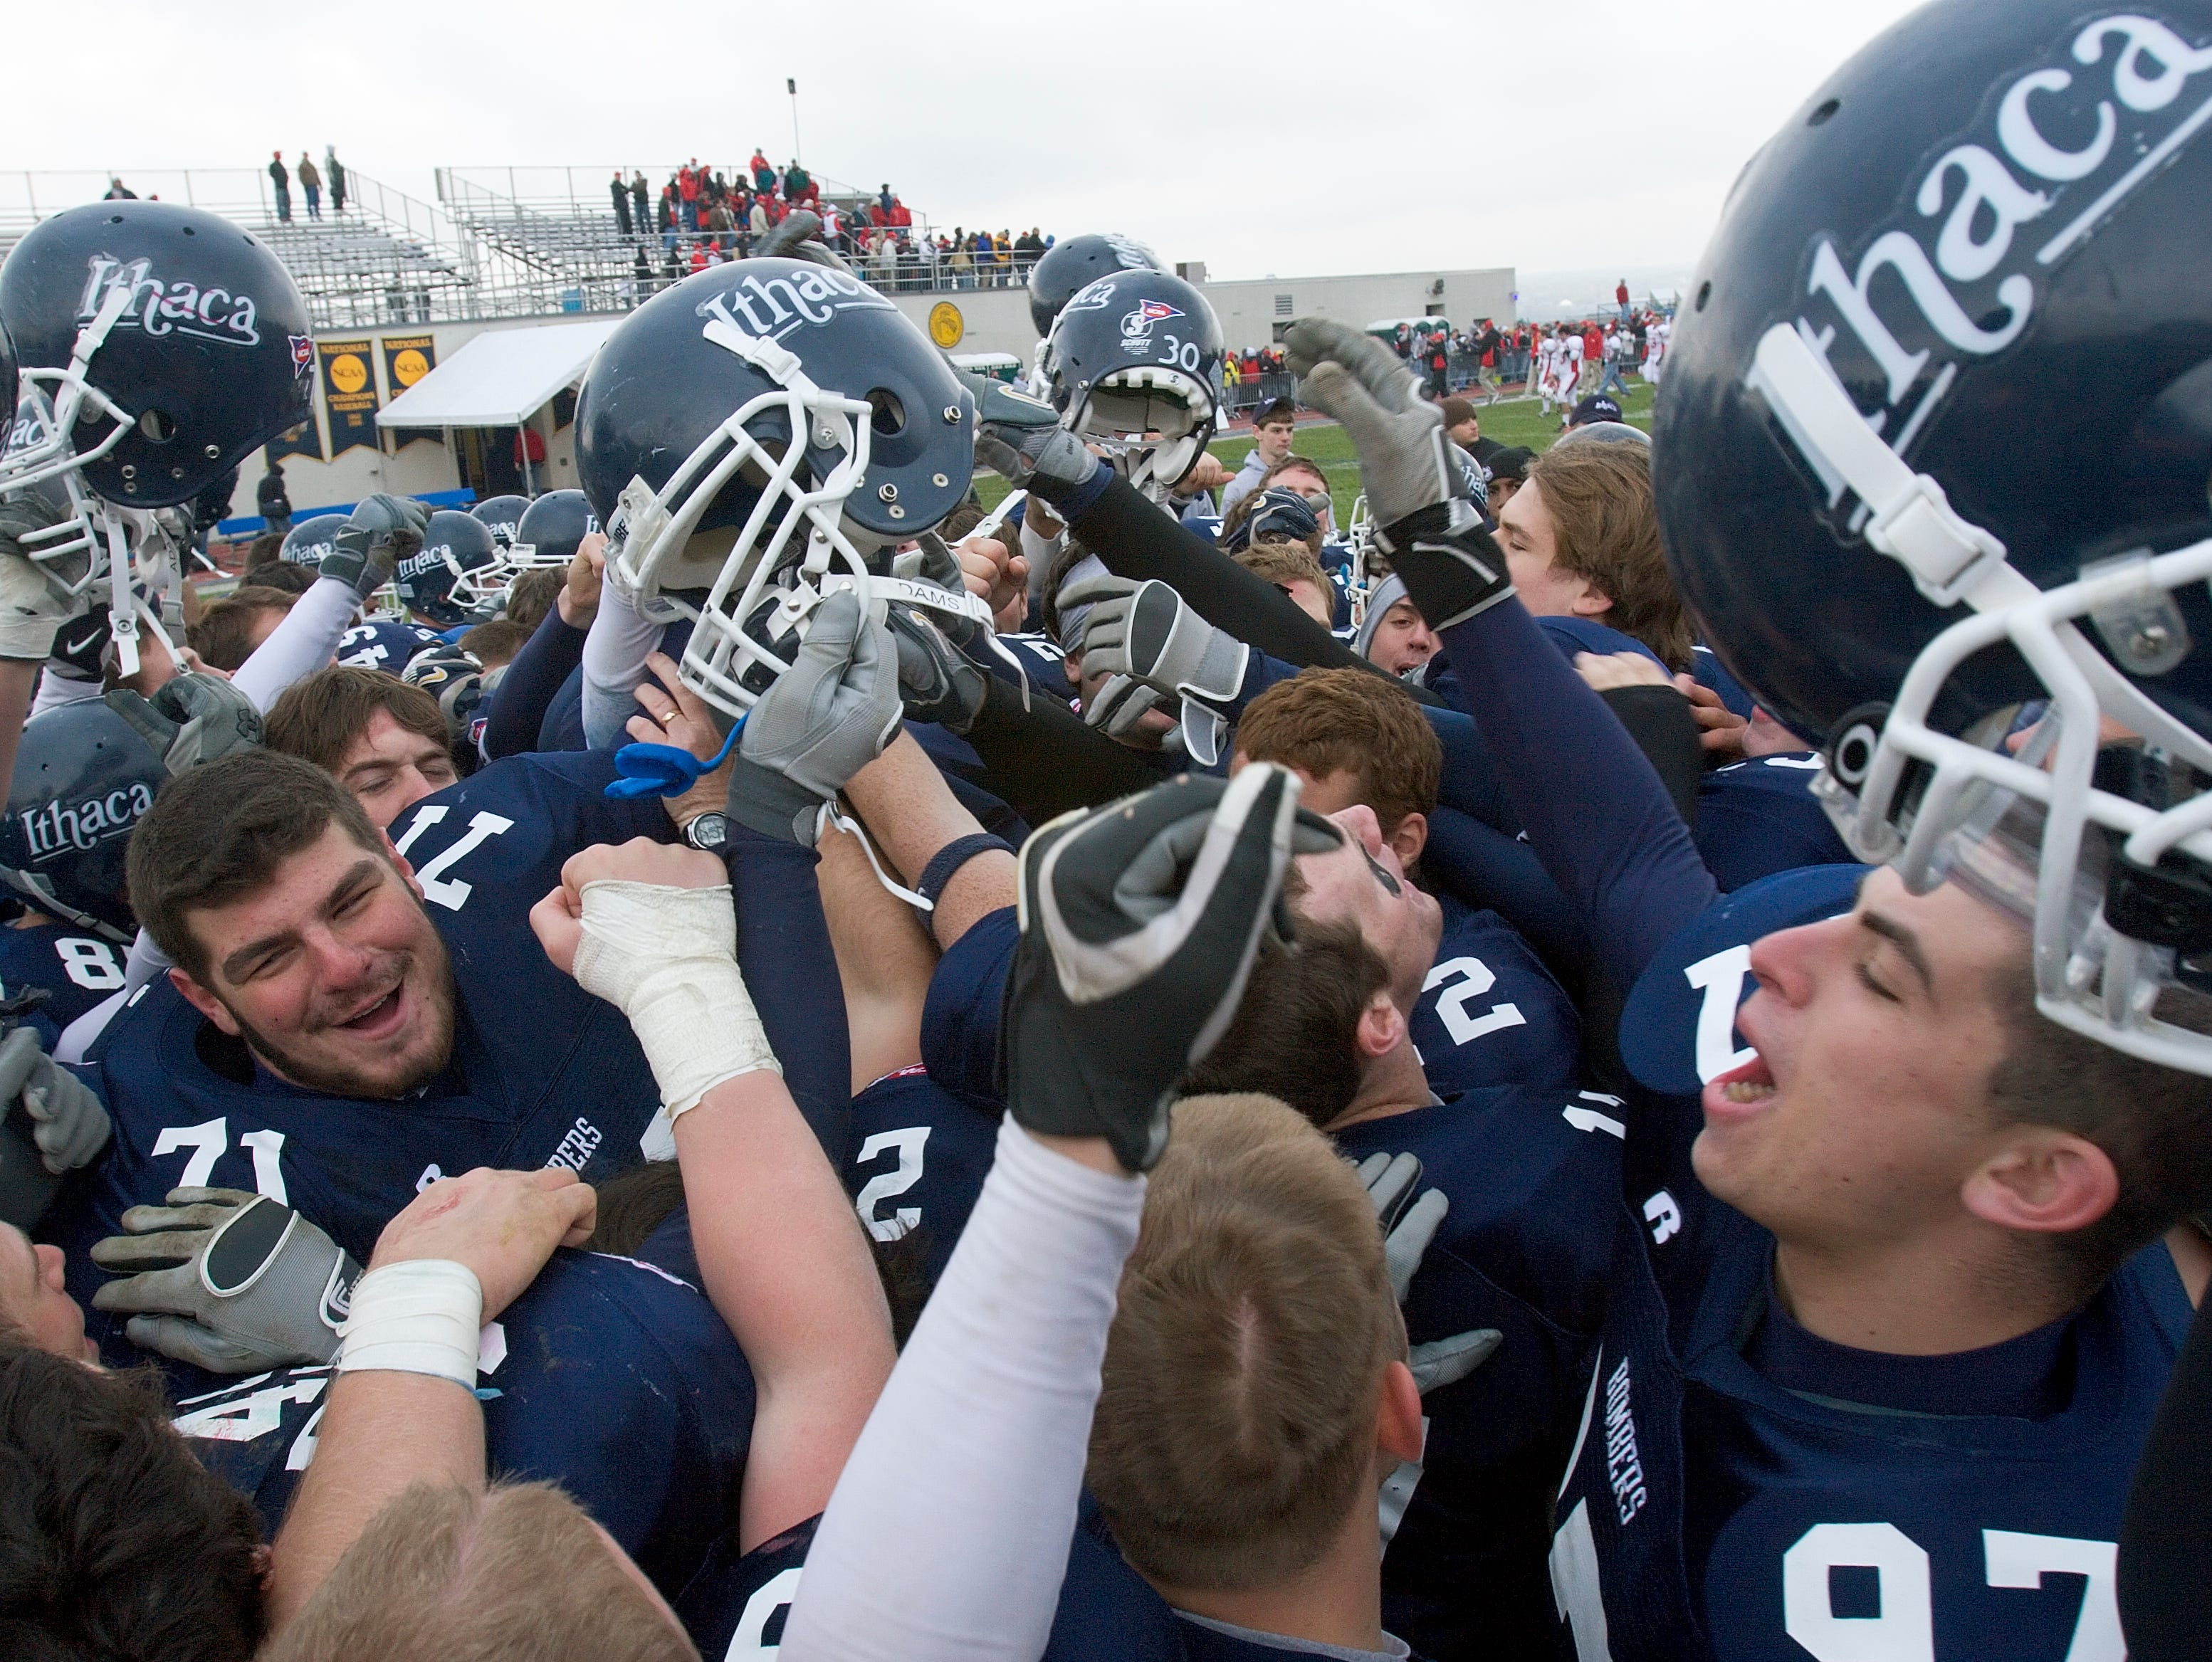 2007: The Ithaca College BomberÕs celebrate after their 40-17 win over Courtland State College after the Cortaca Jug Saturday afternoon at Butterfield Stadium in Ithaca.